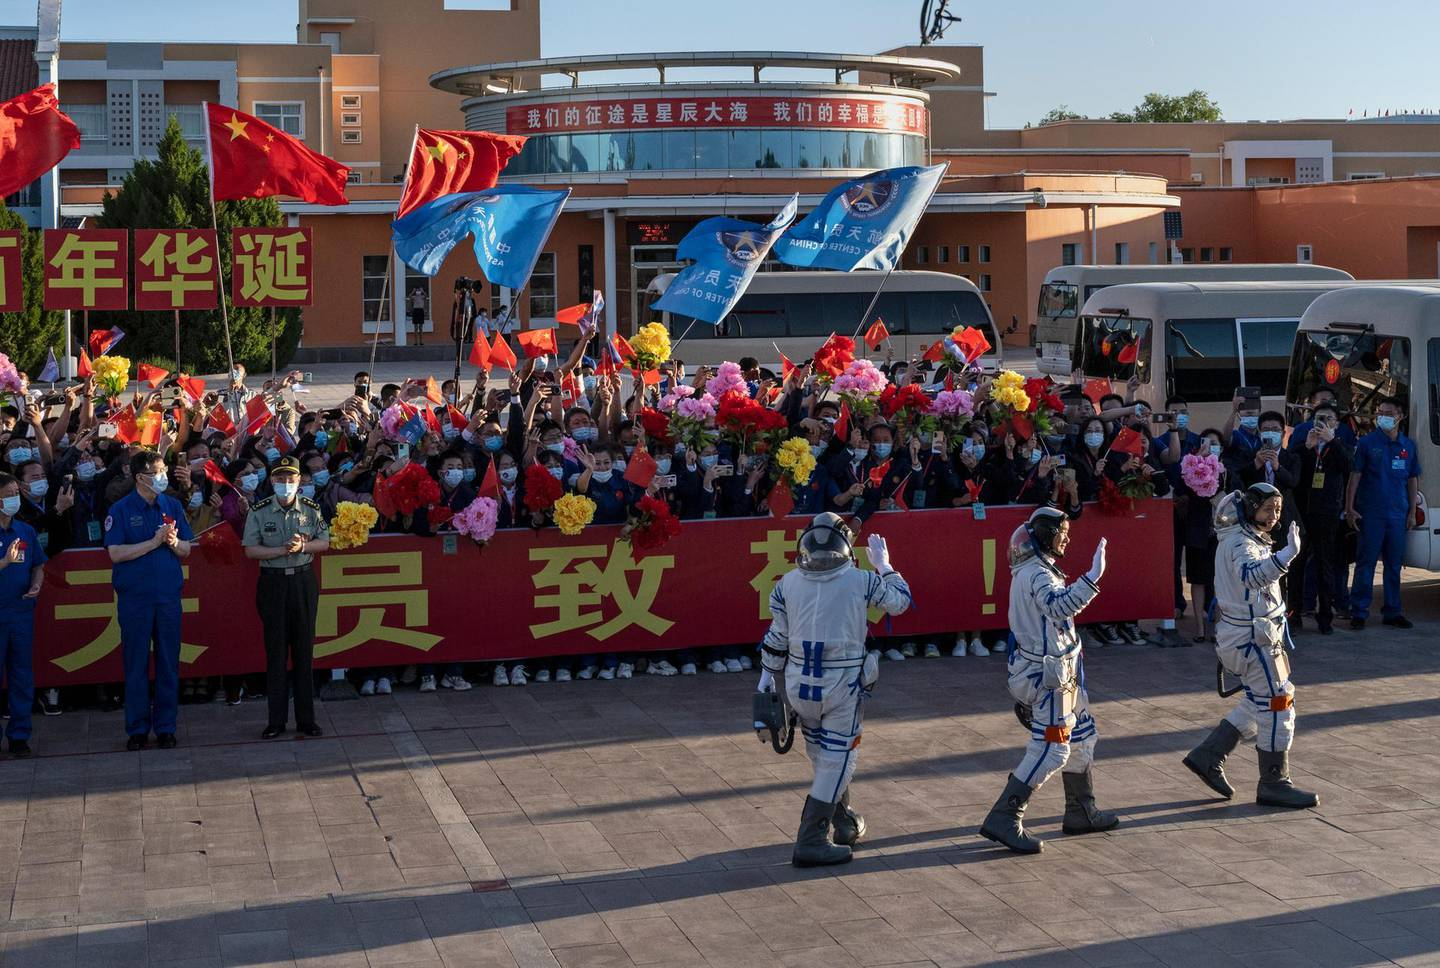 JIUQUAN, CHINA - JUNE 17: Chinese astronauts from China's Manned Space Agency, right to left, Nie Haisheng, Liu Boming, and Tang Hongbo wave at a departure ceremony before the launch of the Senzhou-12 at the Jiuquan Satellite Launch Center on June 17, 2021 in Jiuquan, Gansu province, China. The crew of the Shenzhou-12 spacecraft will be carried on the Long March-2F rocket launched to the space station China is building from the Gobi Desert marking the country's first manned mission in nearly five years. (Photo by Kevin Frayer/Getty Images)